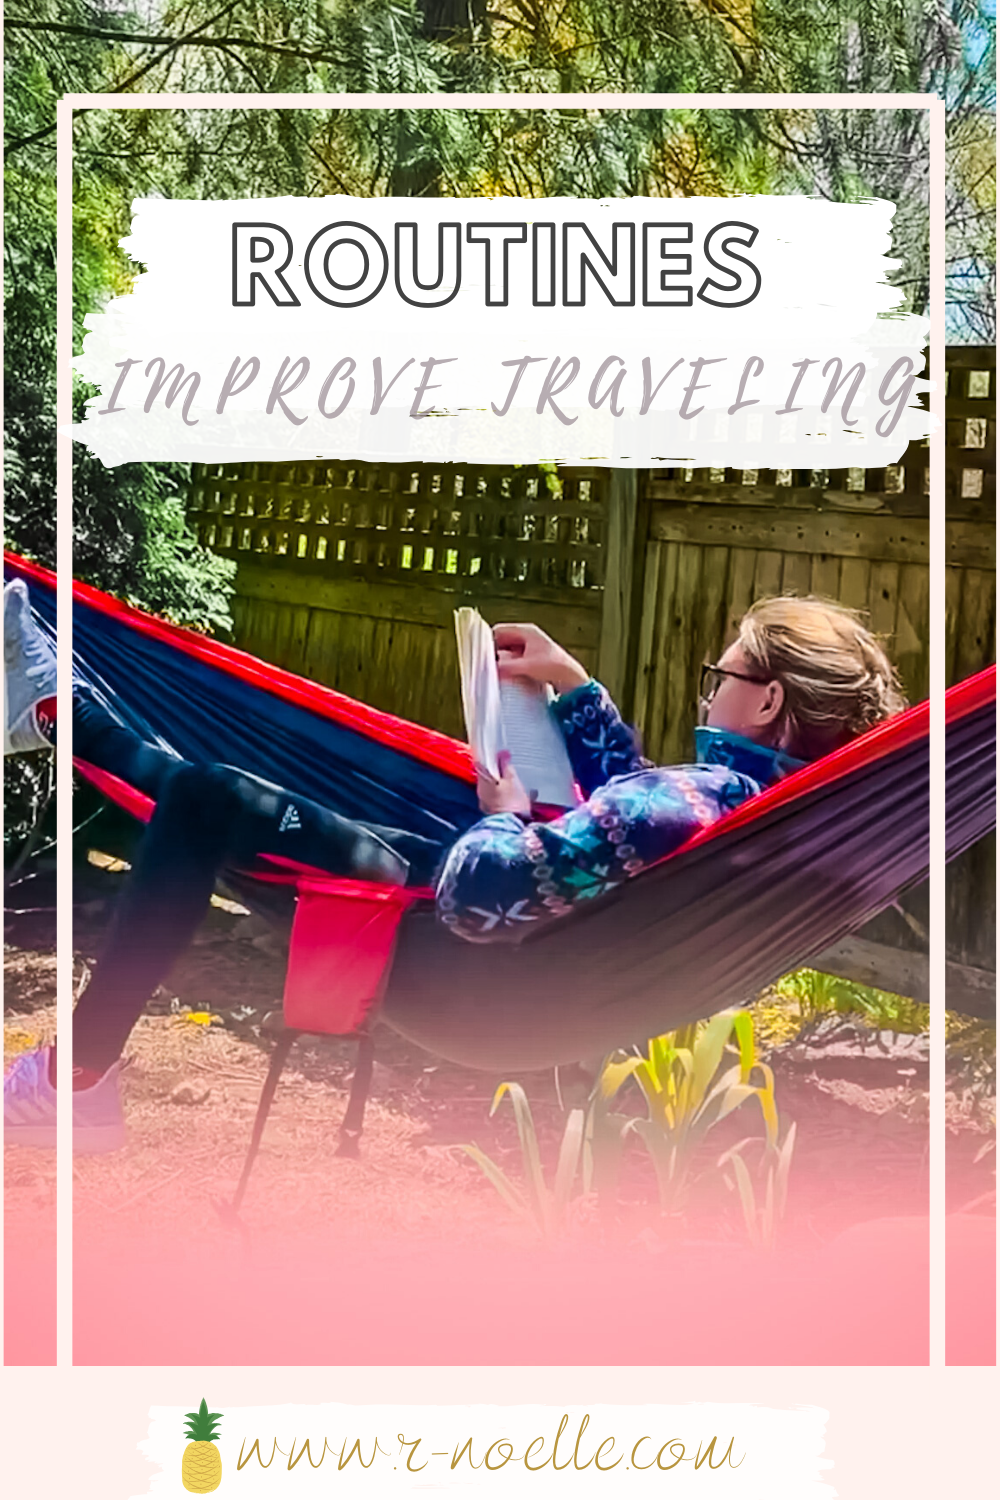 Morning routines can help your trip be more productive. Establishing these healthy habits before work will make the transition to travel smooth and easy. A morning routine could not happen without a proper night time routine. This night time checklist can help you make the most of any trip.